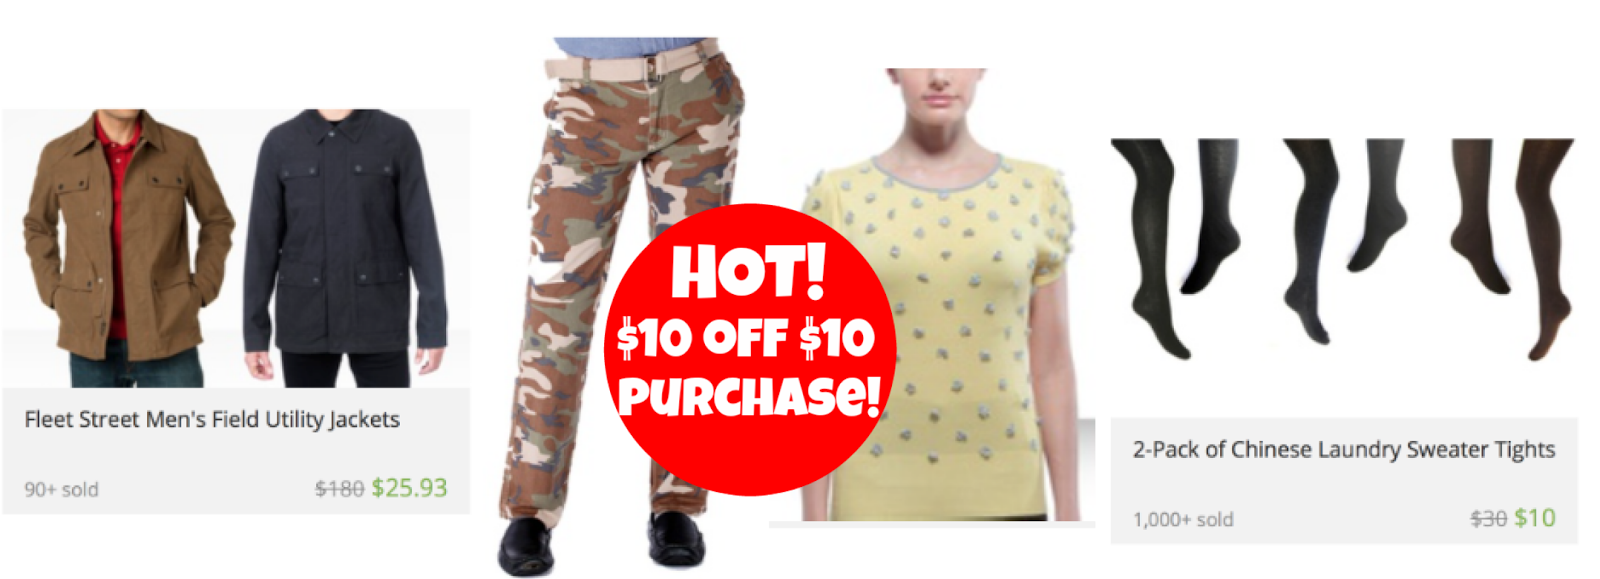 http://www.thebinderladies.com/2014/12/hot-groupon-10-off-10-or-more-apparel.html